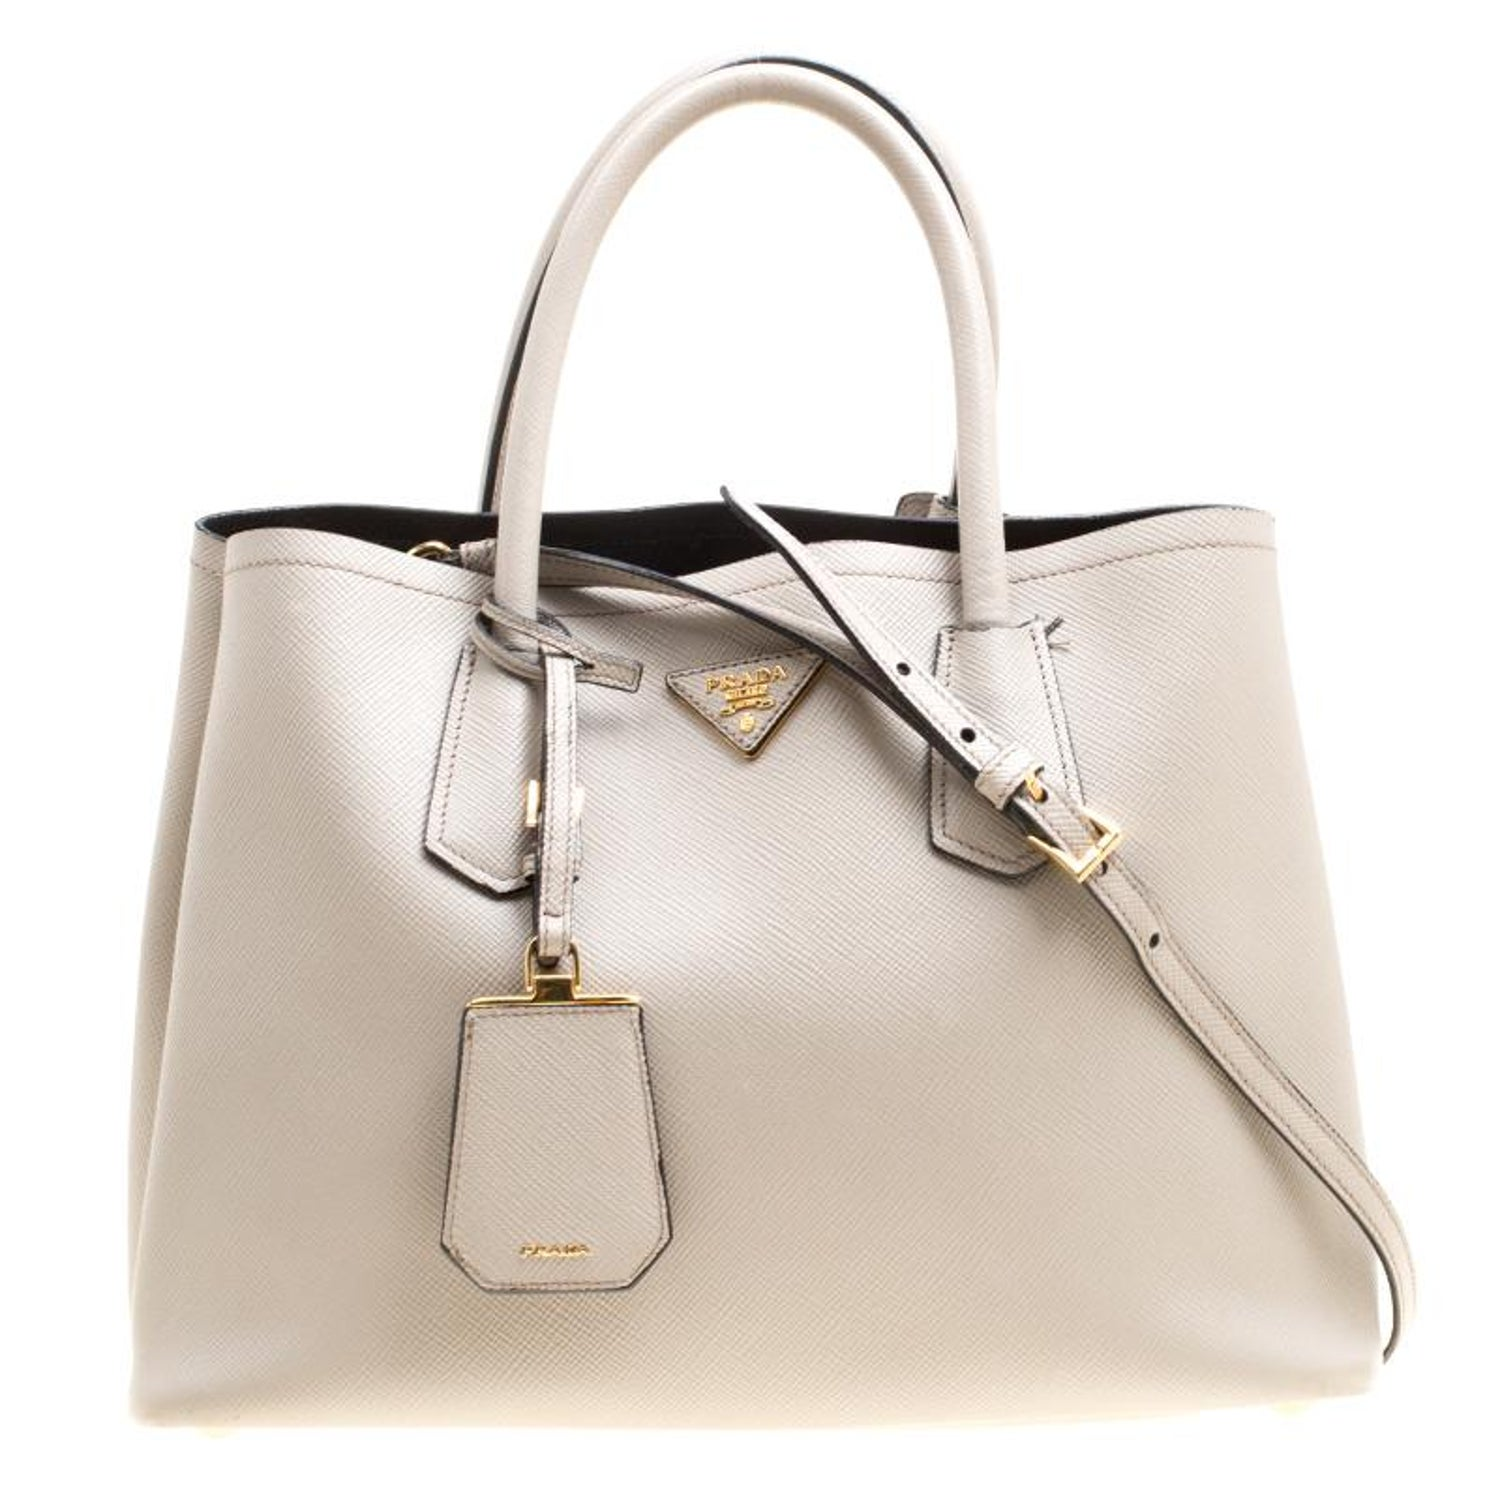 c8dfcd3d2ba Prada Grey Saffiano Cuir Leather Double Top Handle Bag For Sale at 1stdibs